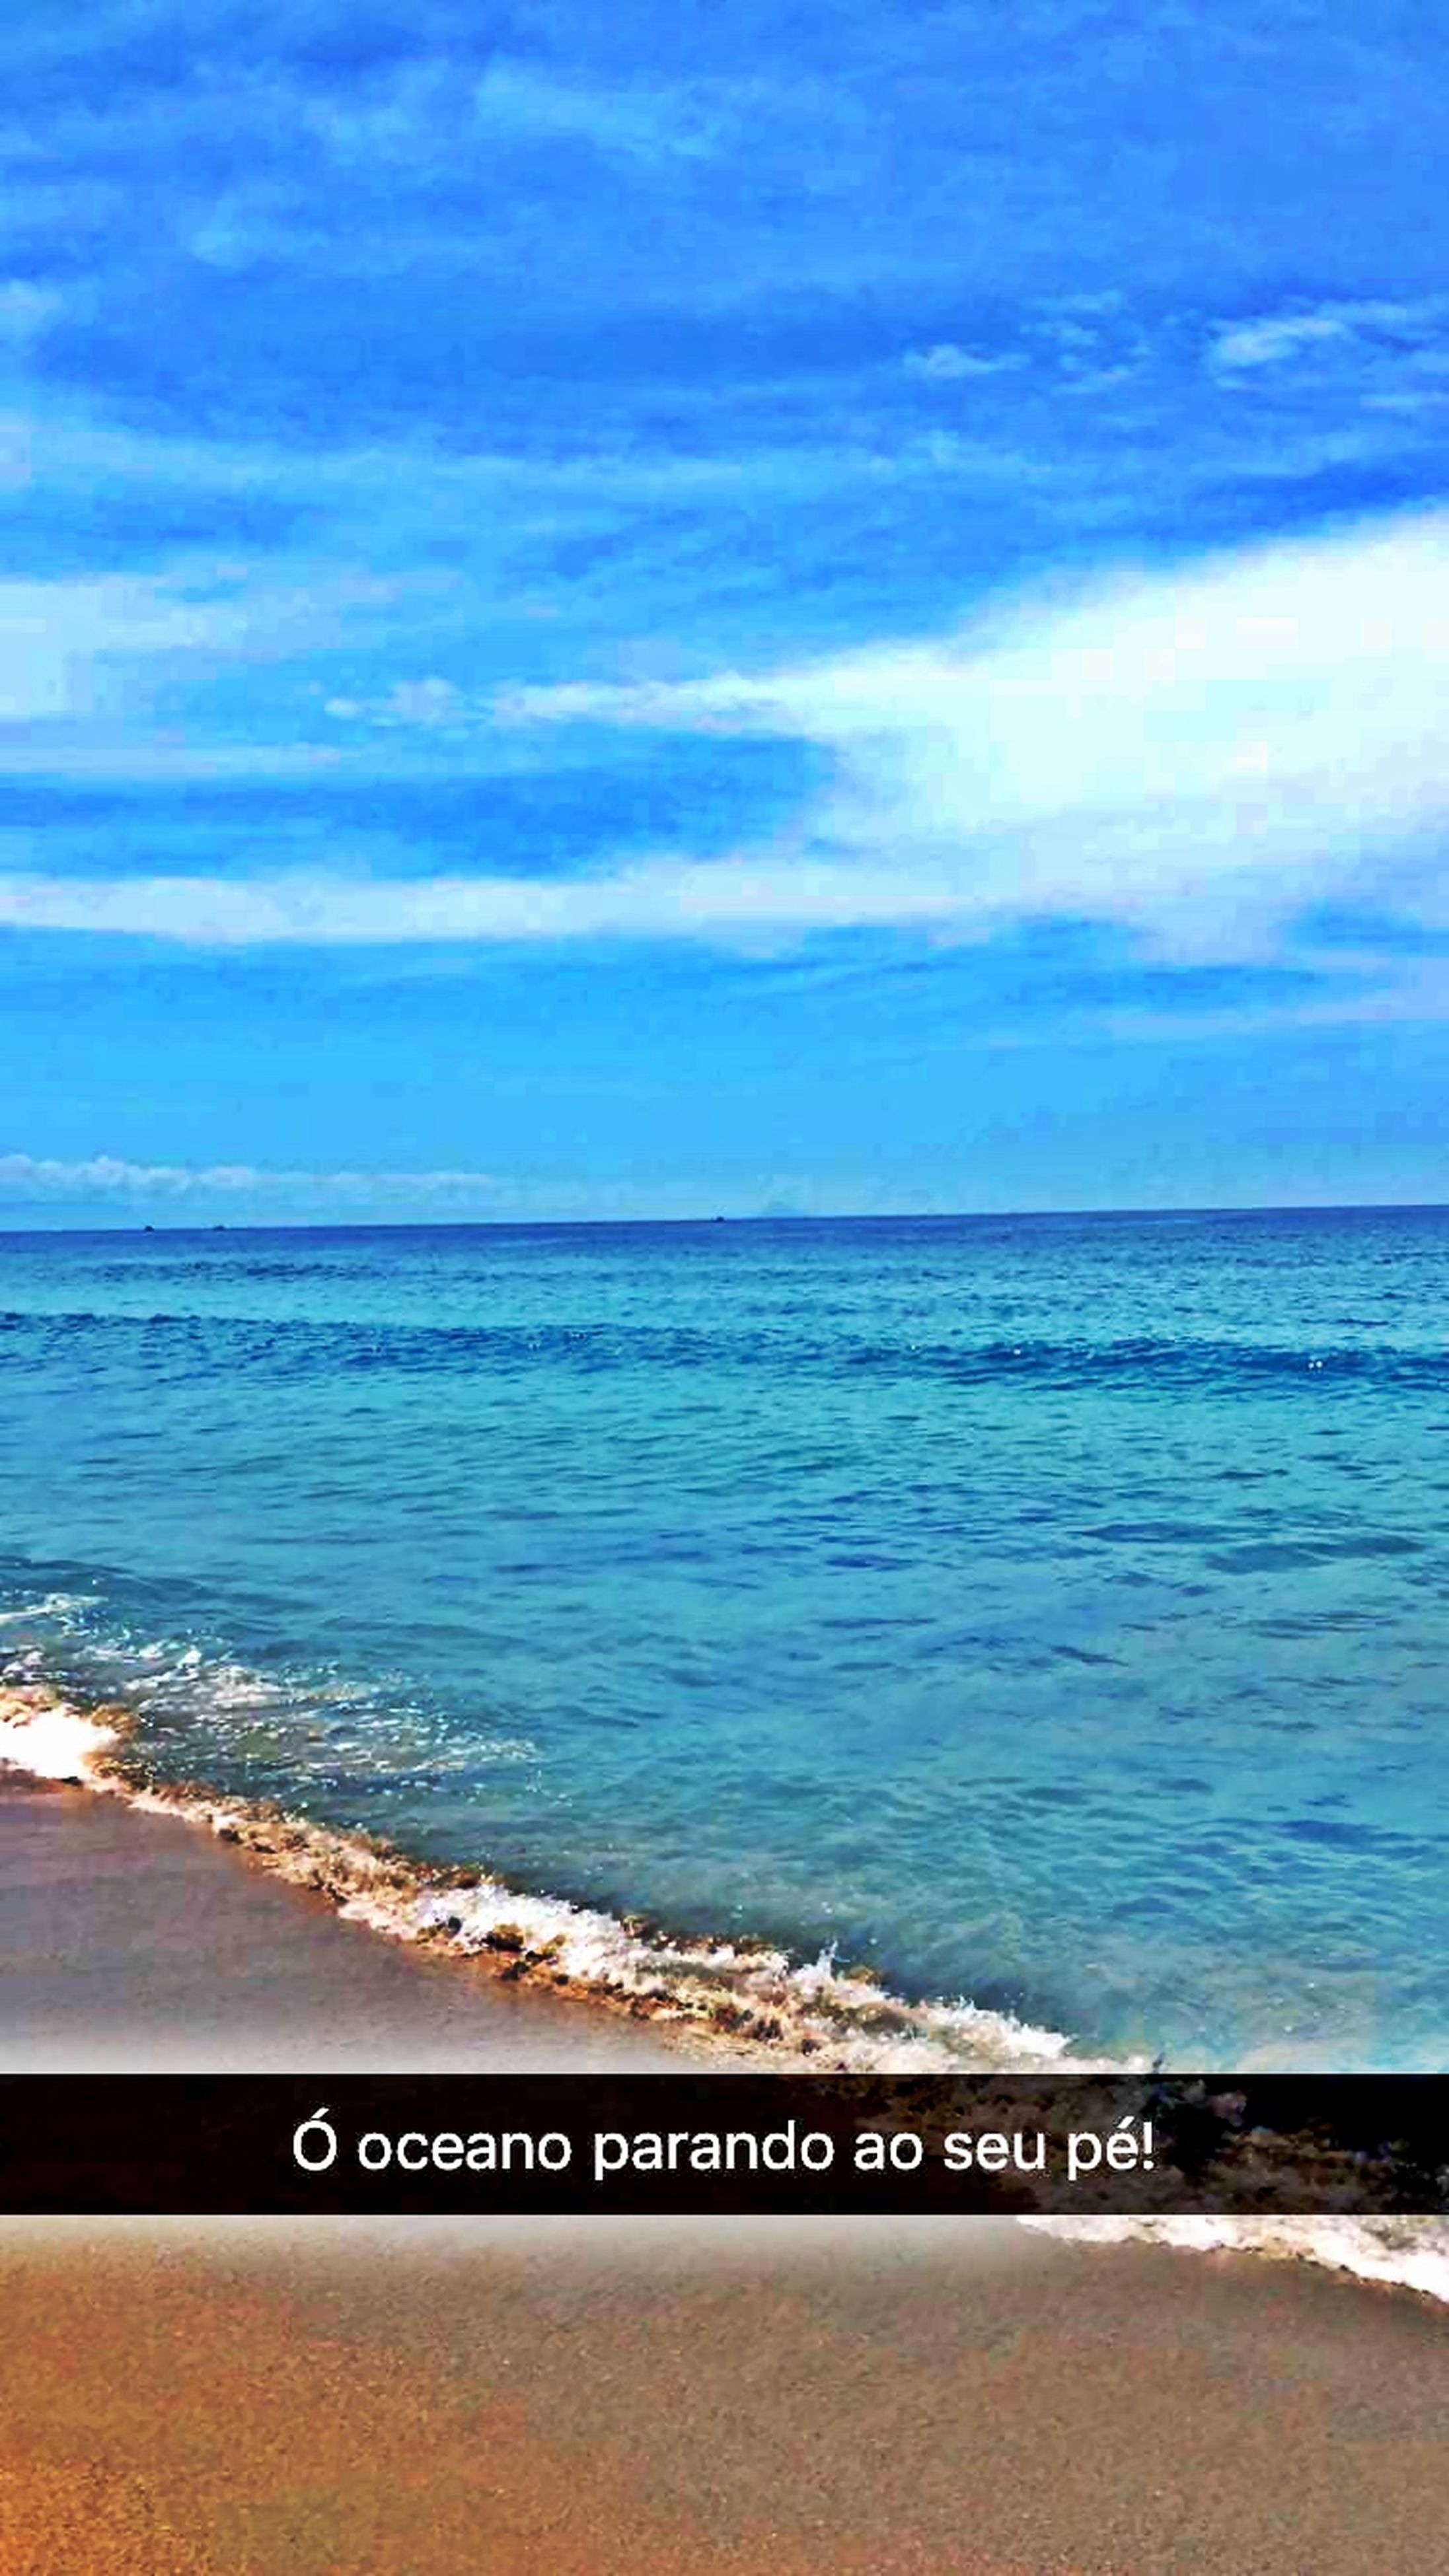 sea, horizon over water, water, beach, sky, shore, scenics, tranquil scene, tranquility, beauty in nature, blue, nature, text, sand, cloud - sky, western script, idyllic, cloud, wave, outdoors